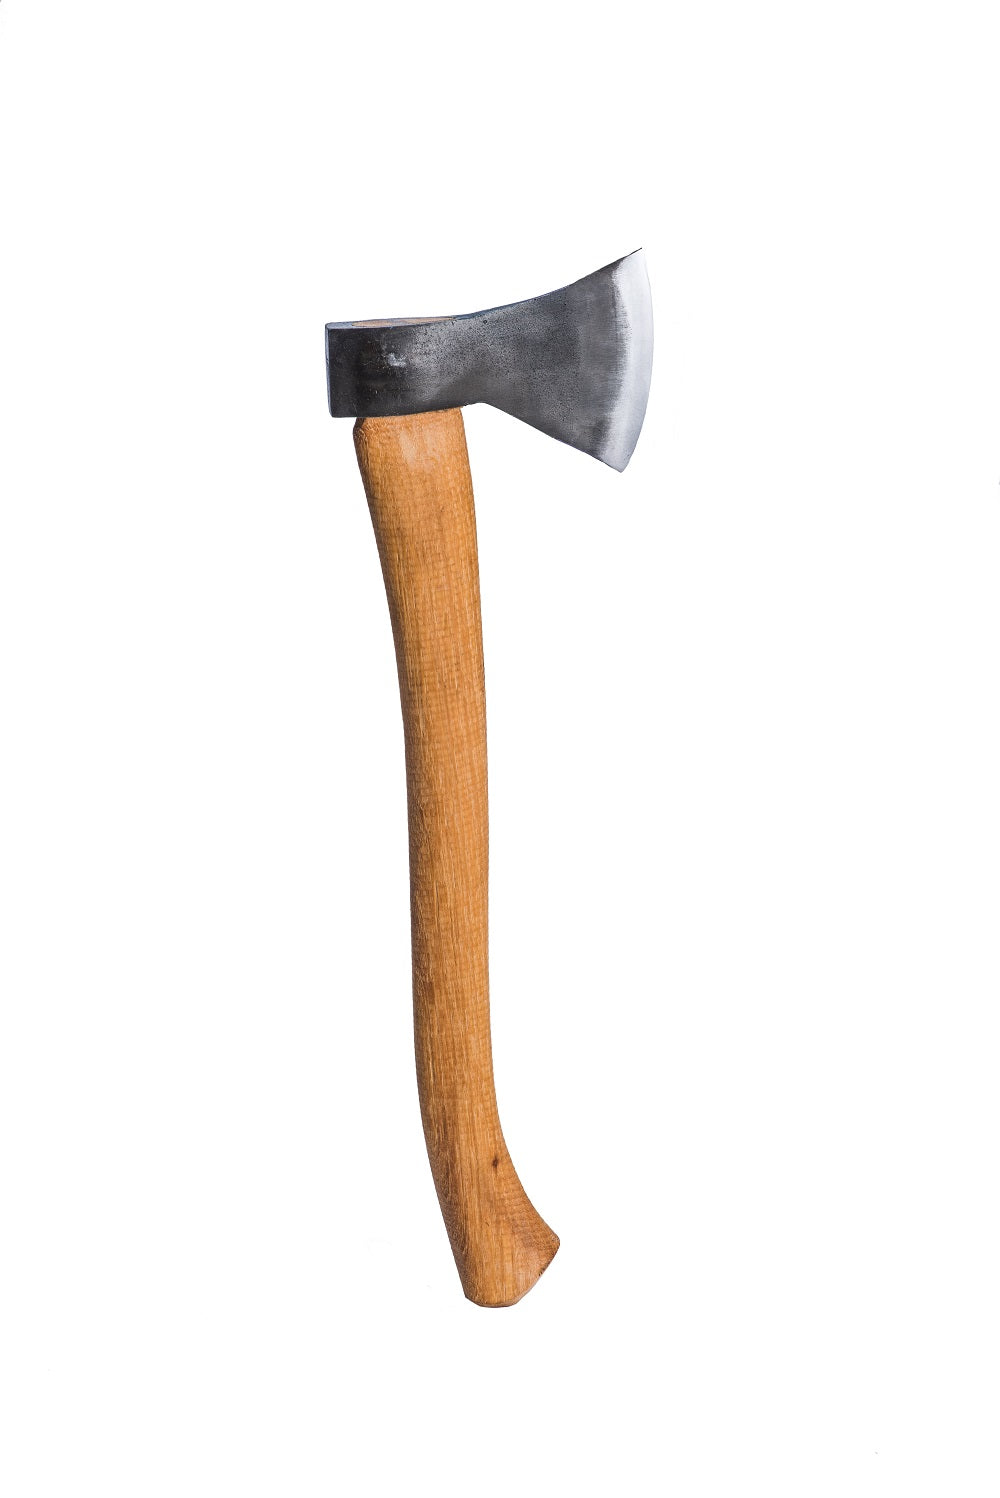 Wood Tools: Bushcraft Axe